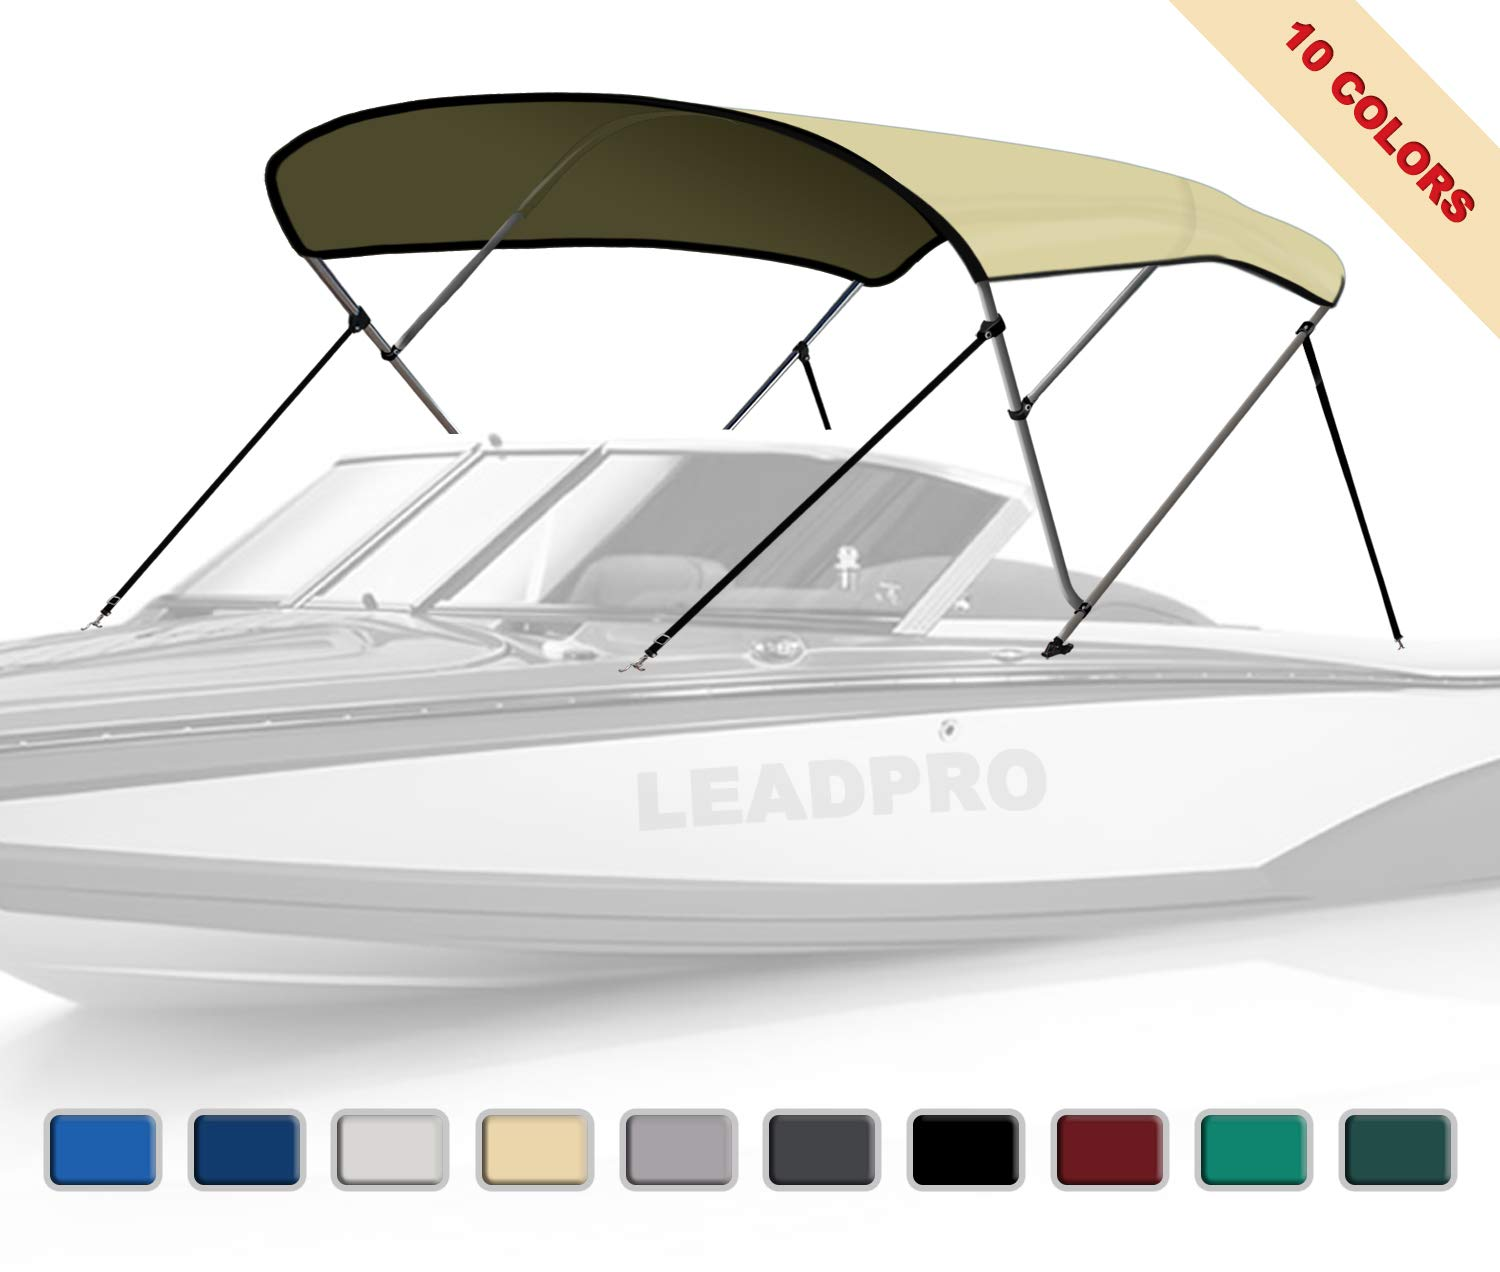 Leadpro 10 Optional Colors 13 Different Sizes 3-4 Bow Bimini Top Boat Cover with 4 Straps, Mounting Hardwares & Storage Boot (Beige, 3 Bow 6'L x 46'' H x 54''-60'' W) by Leadpro